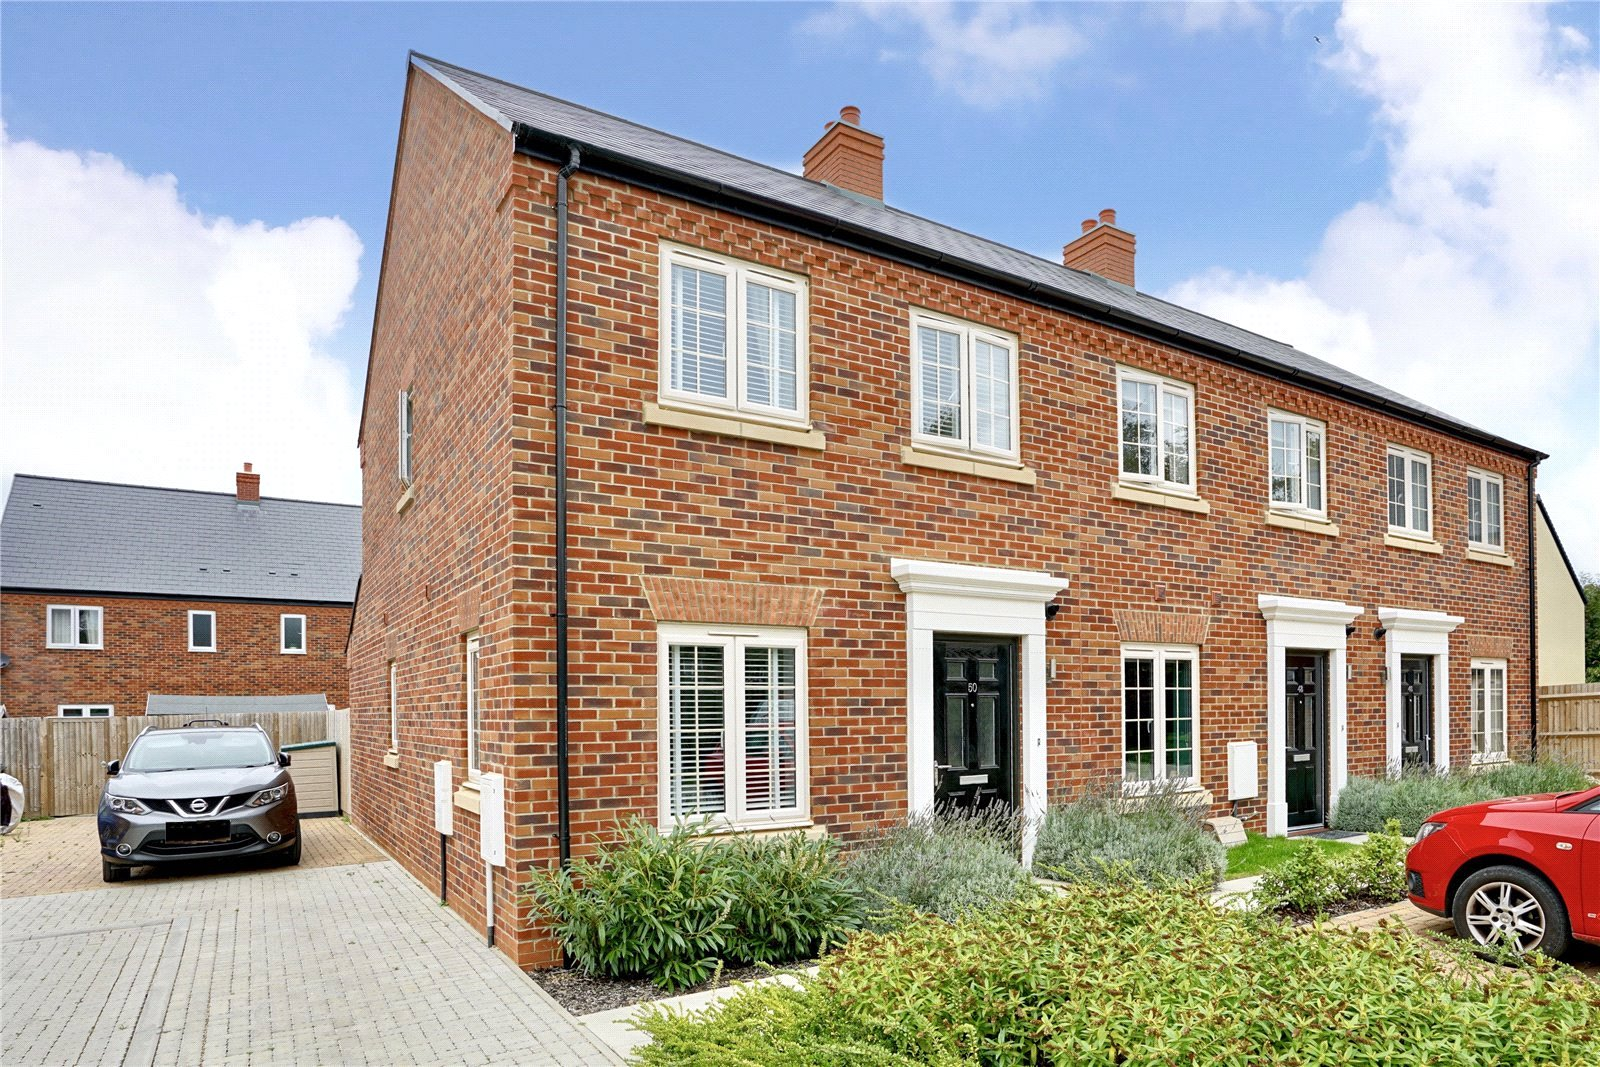 2 bed house for sale in Brampton, PE28 4GN - Property Image 1